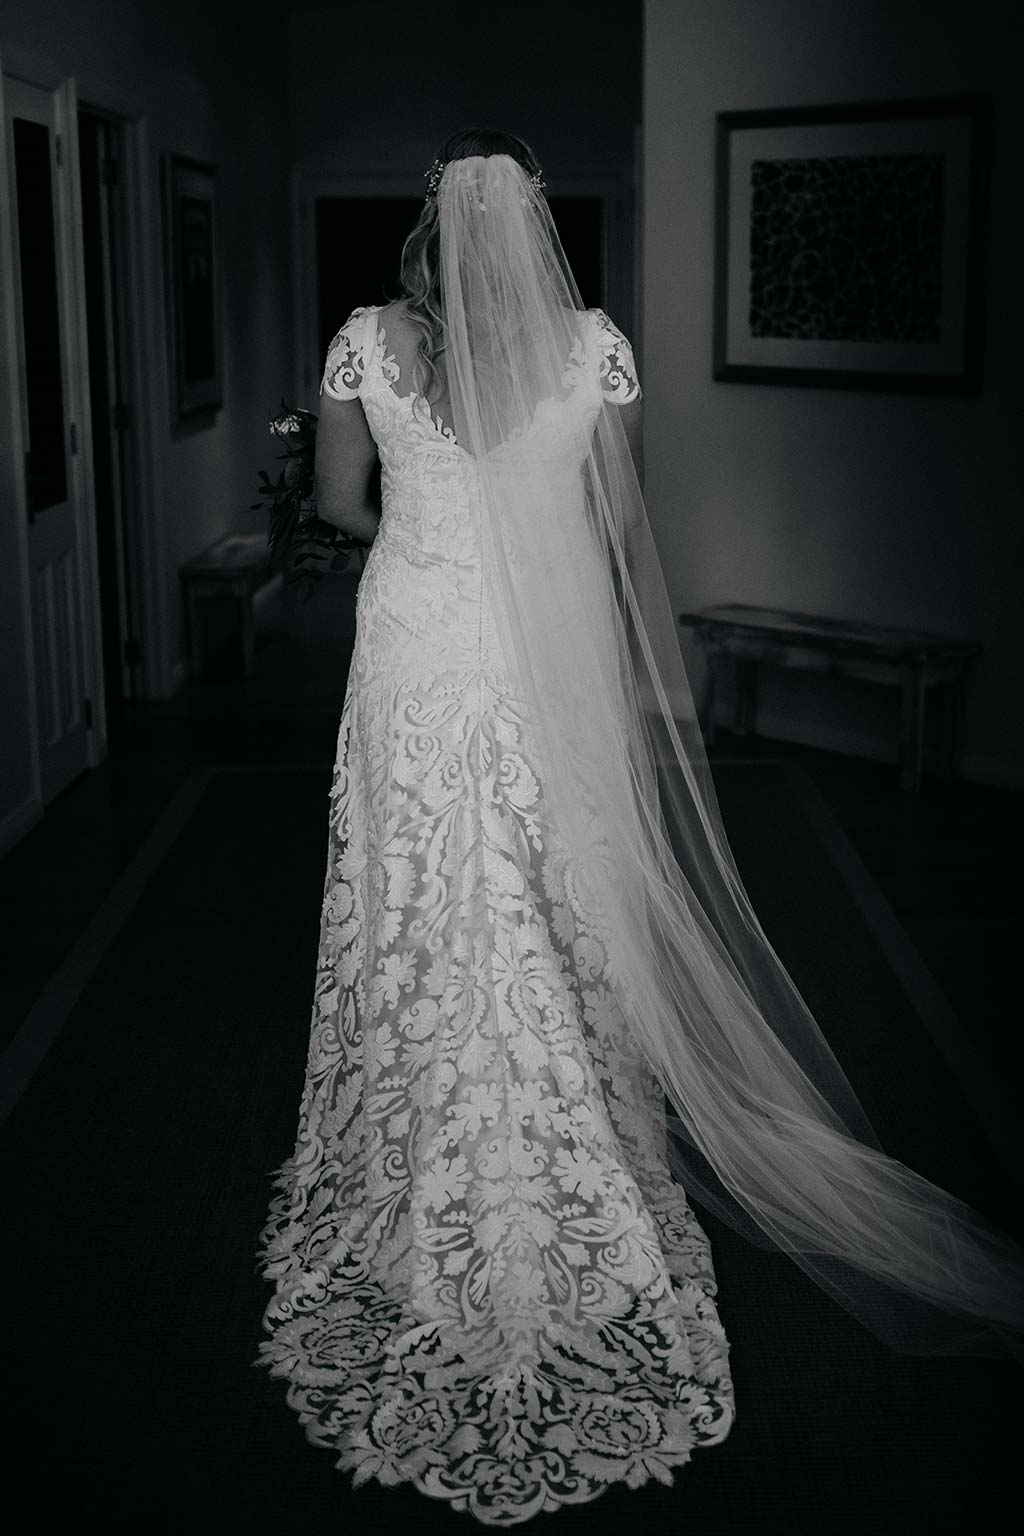 Vinka Design Features Real Weddings - bride wearing bespoke Vinka wedding gown - back of dress with lace detail and train